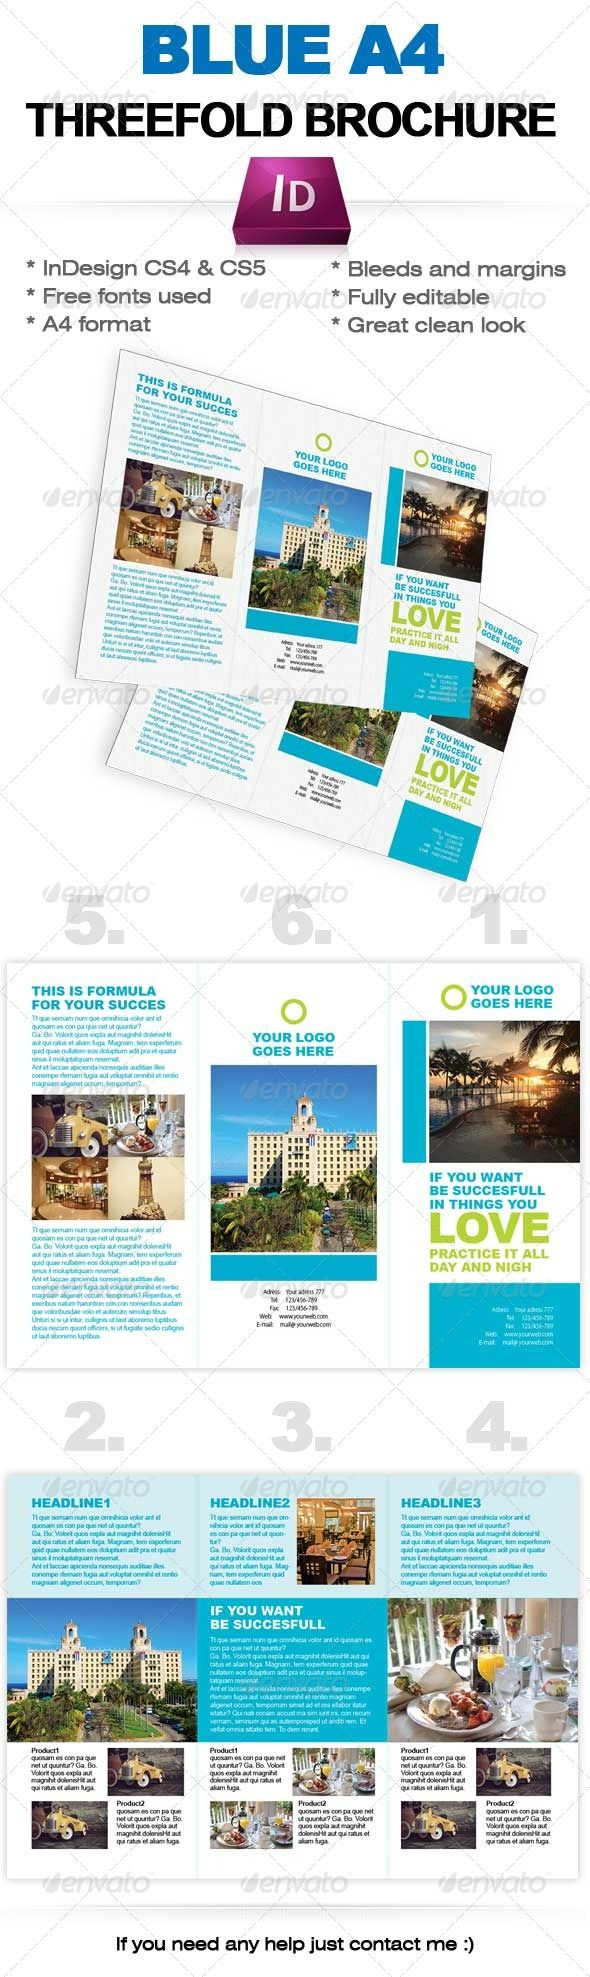 indesign cs5 templates free download 17 best images about print templates on pinterest the